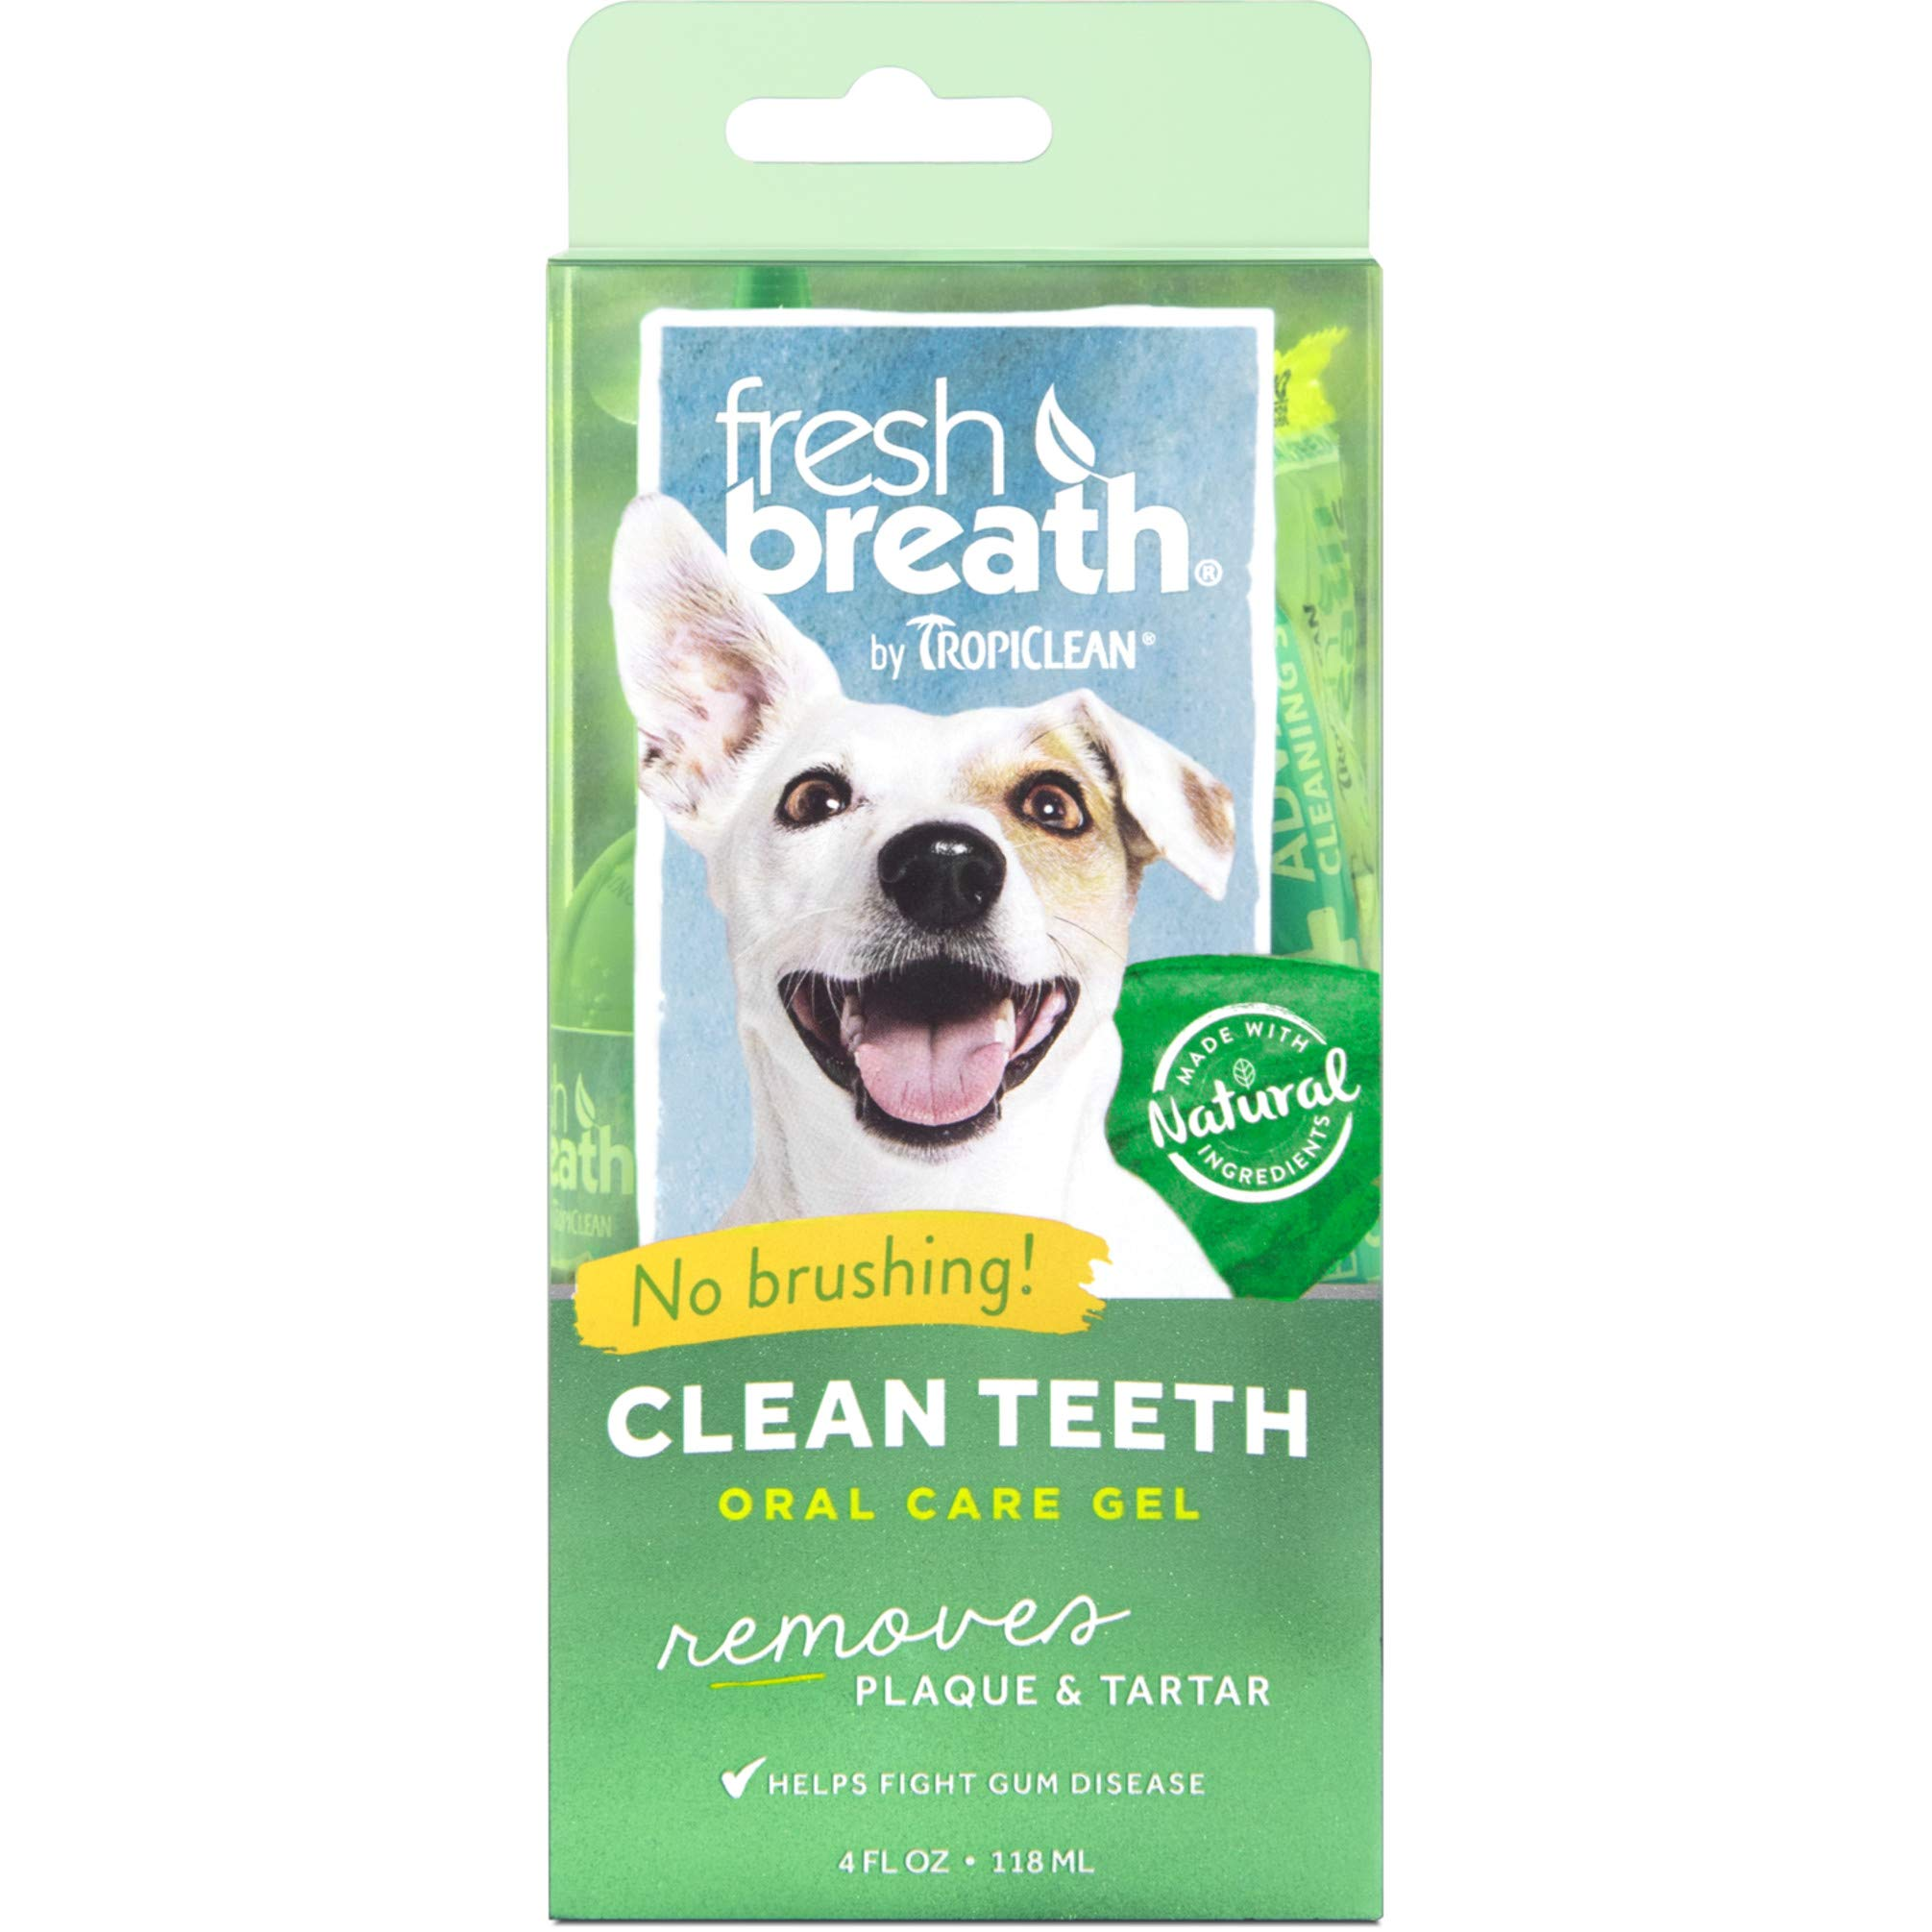 Fresh Breath by TropiClean No Brushing Clean Teeth Dental & Oral Care Gel for Dogs, 4oz, Made in USA by TropiClean